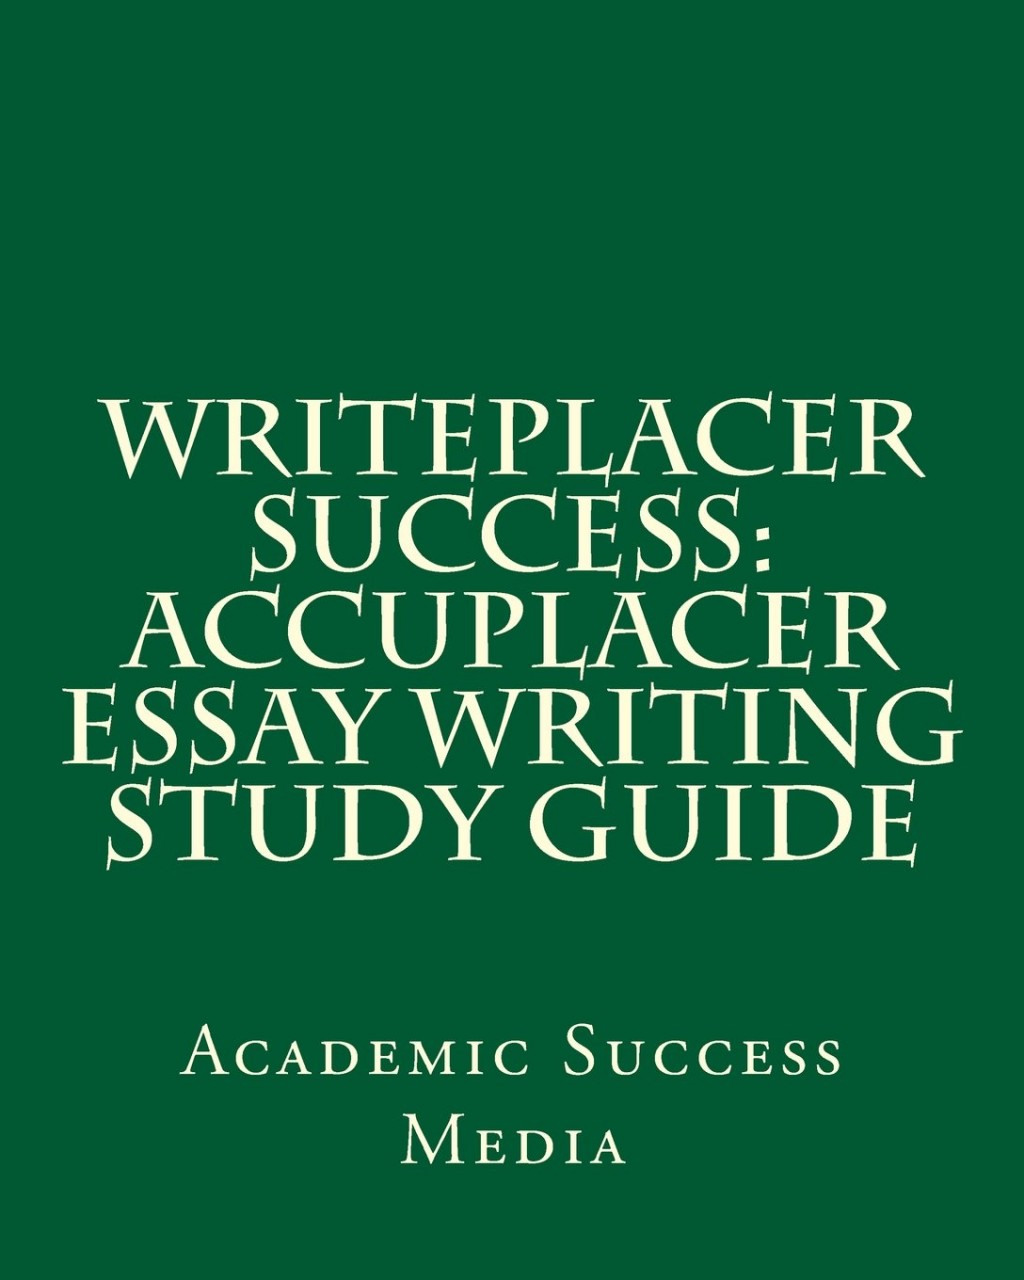 006 Essay Example Accuplacer 612bjro Outstanding Score 7 Study Guide Writeplacer Success Writing Large